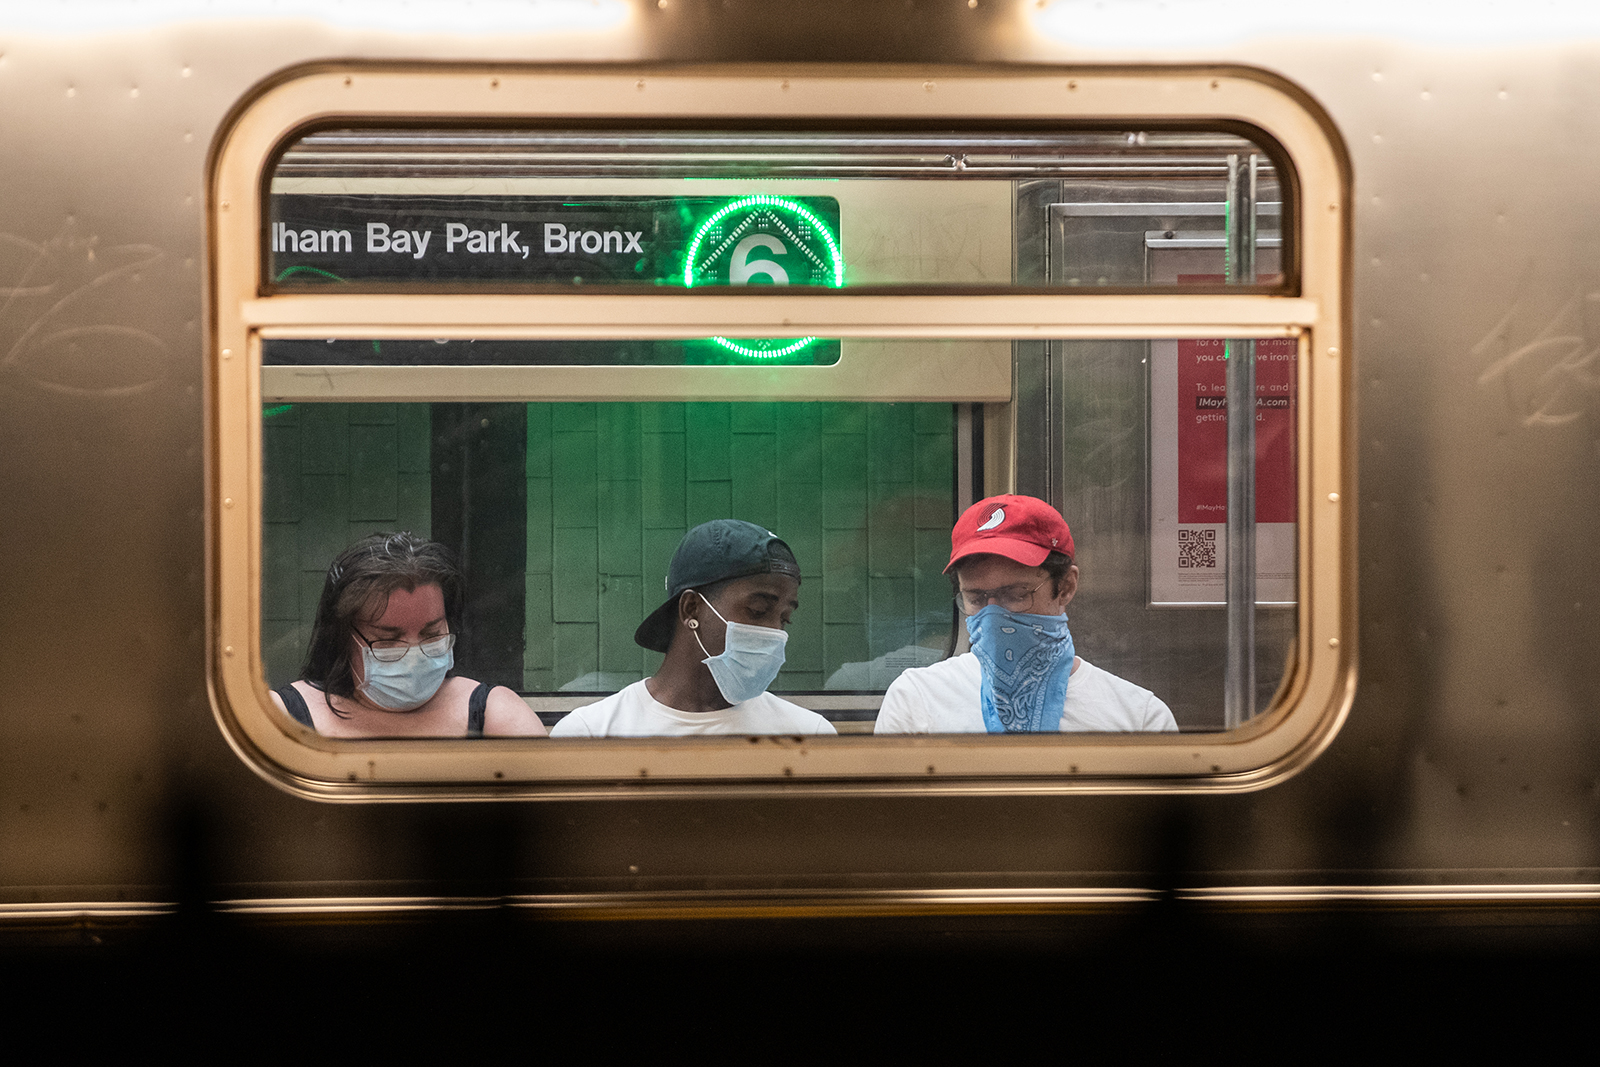 Passengers wearing protective masks ride the subway in New York, on June 10.